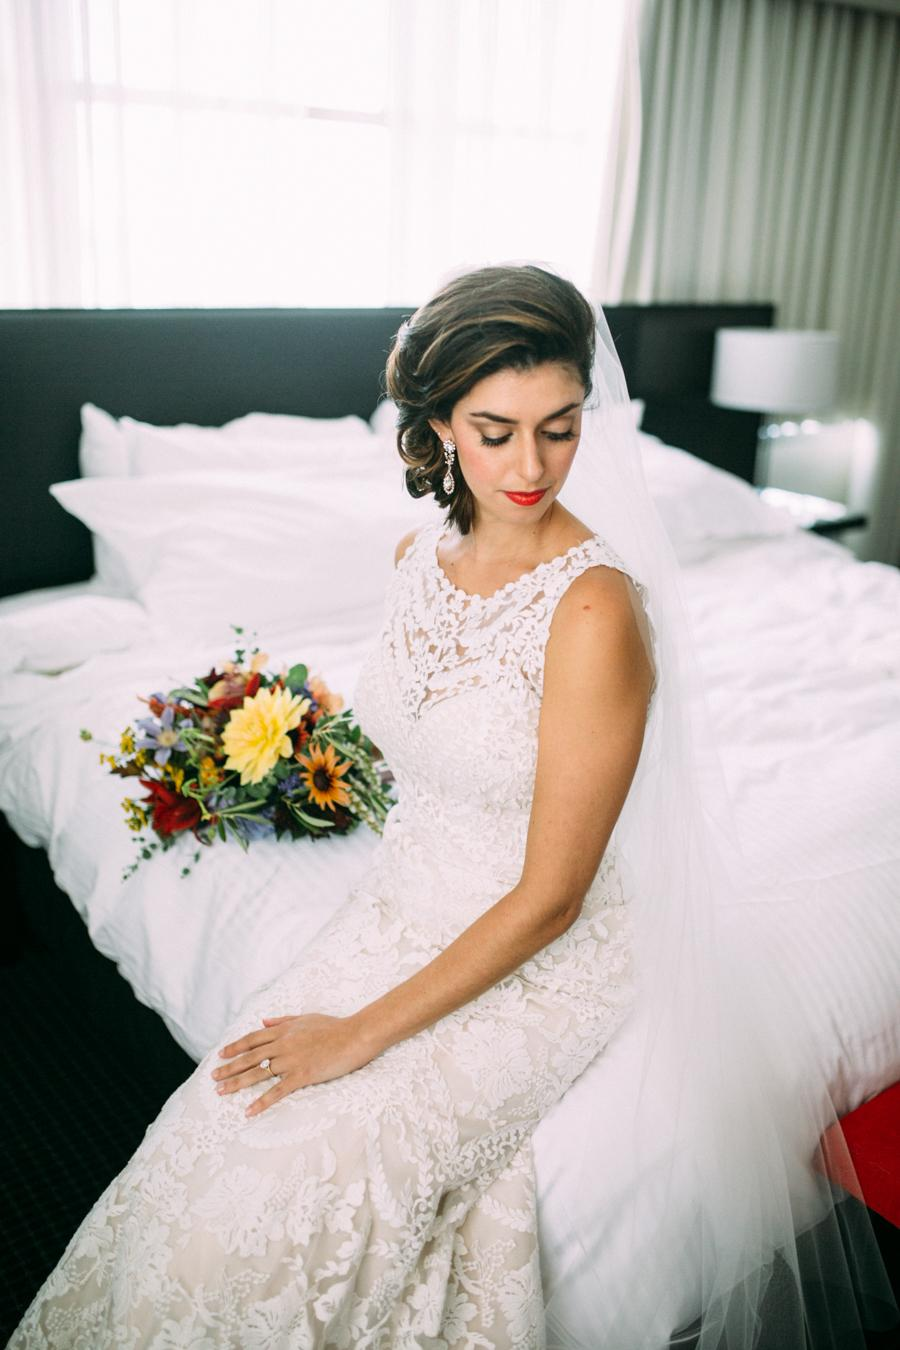 10 Wedding Planning Tips From Real Philadelphia Brides Philly In Love Philadelphia Weddings Venues Vendors